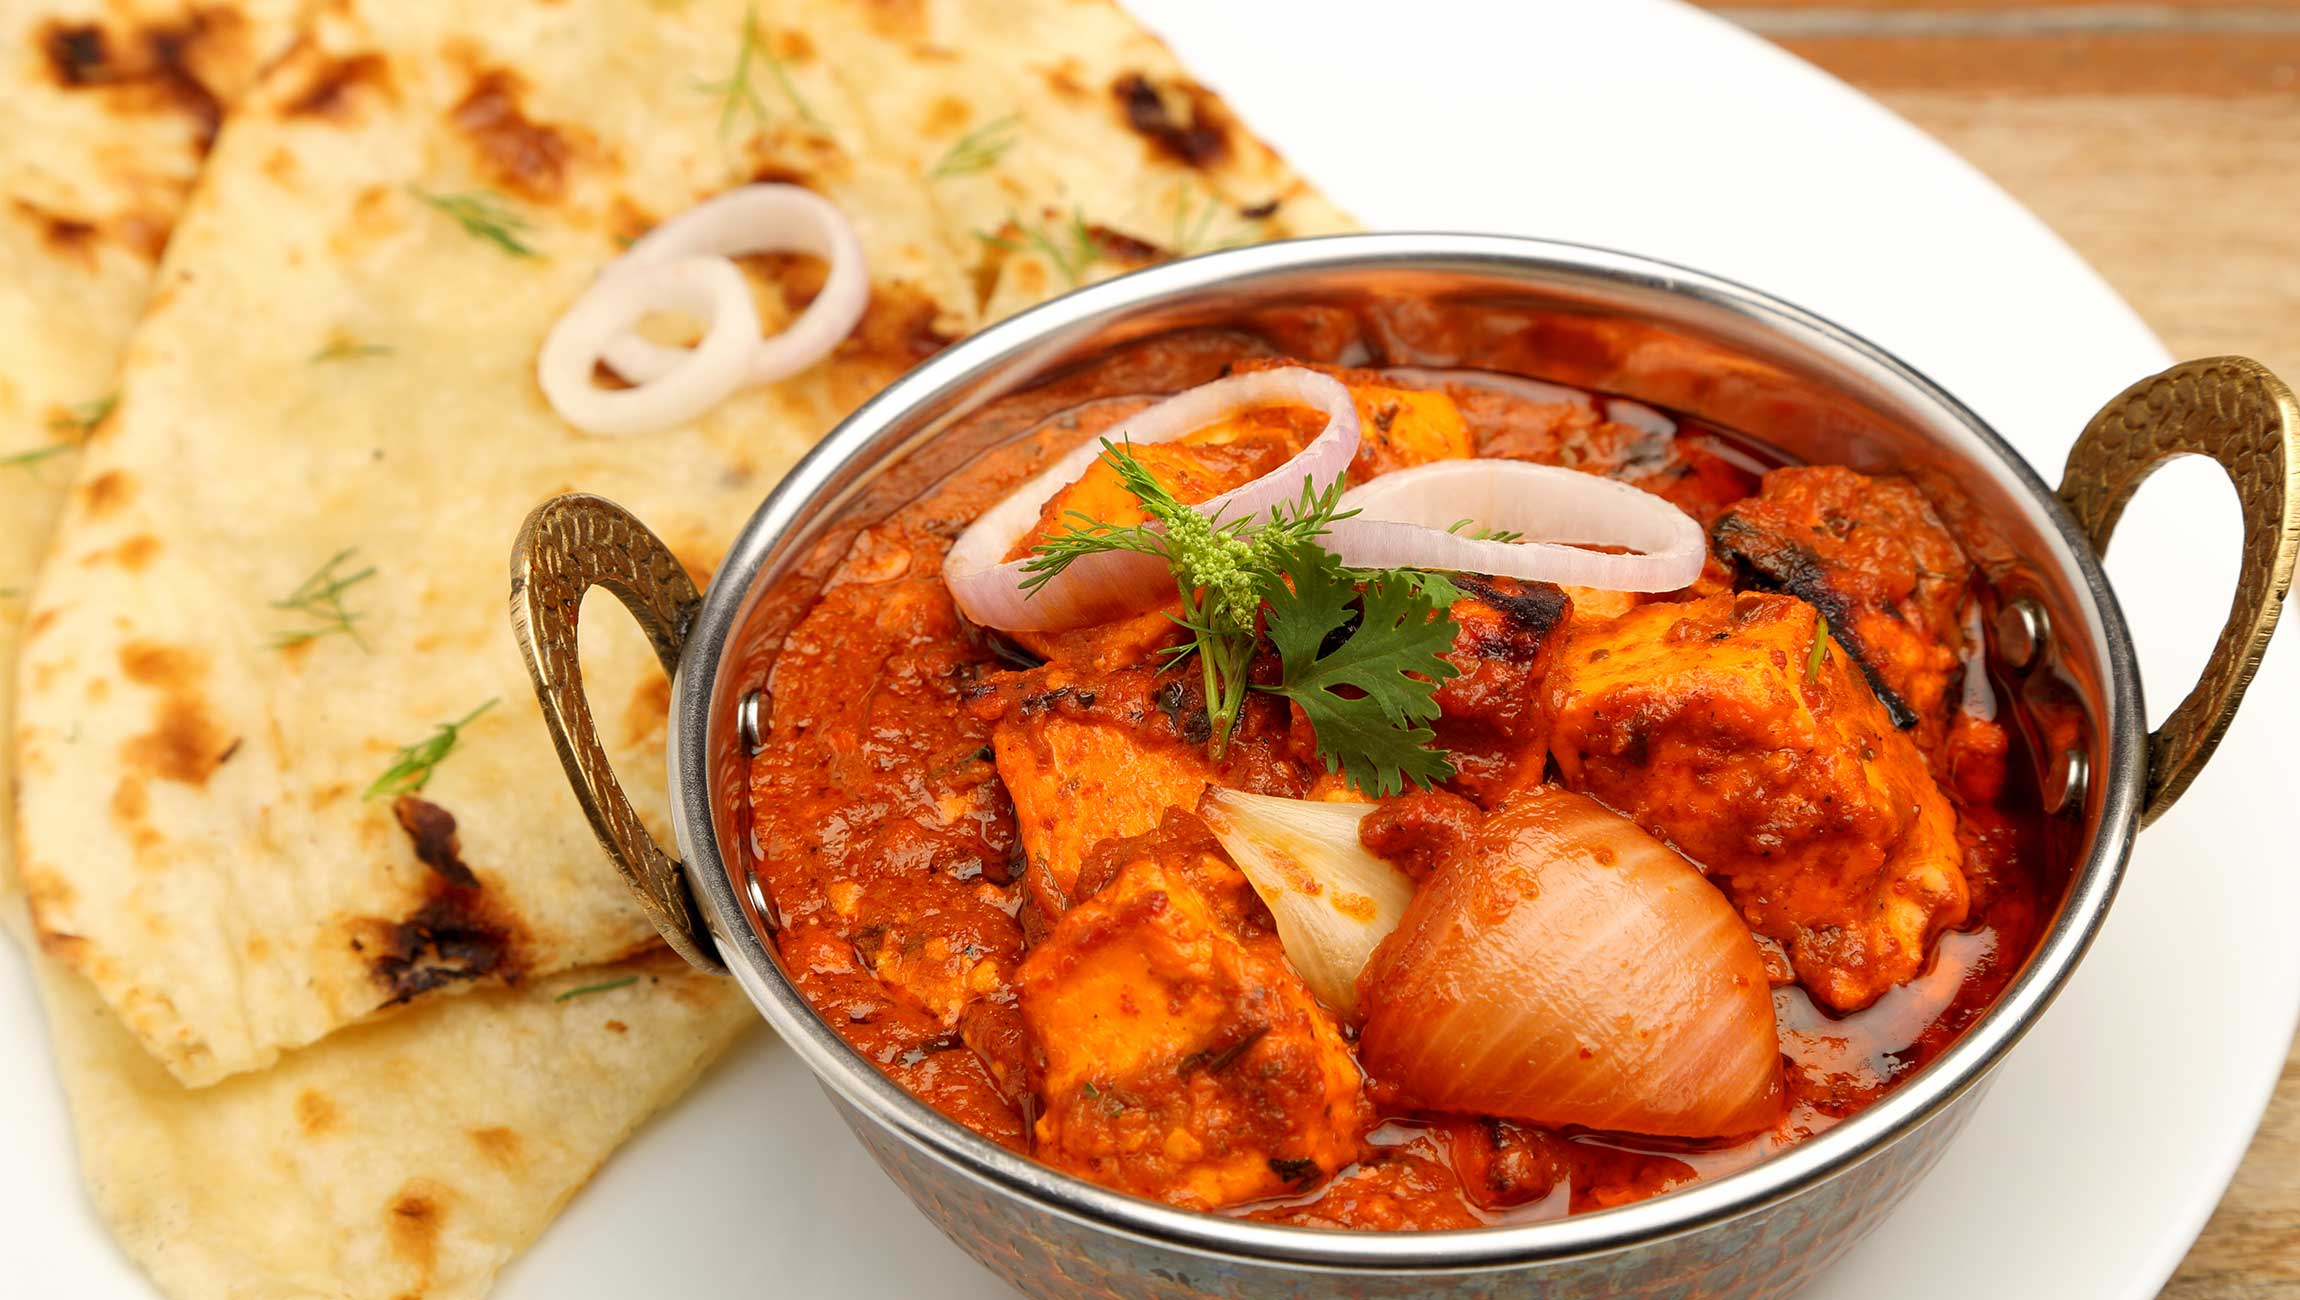 traditional indian curry on plate with naan bread